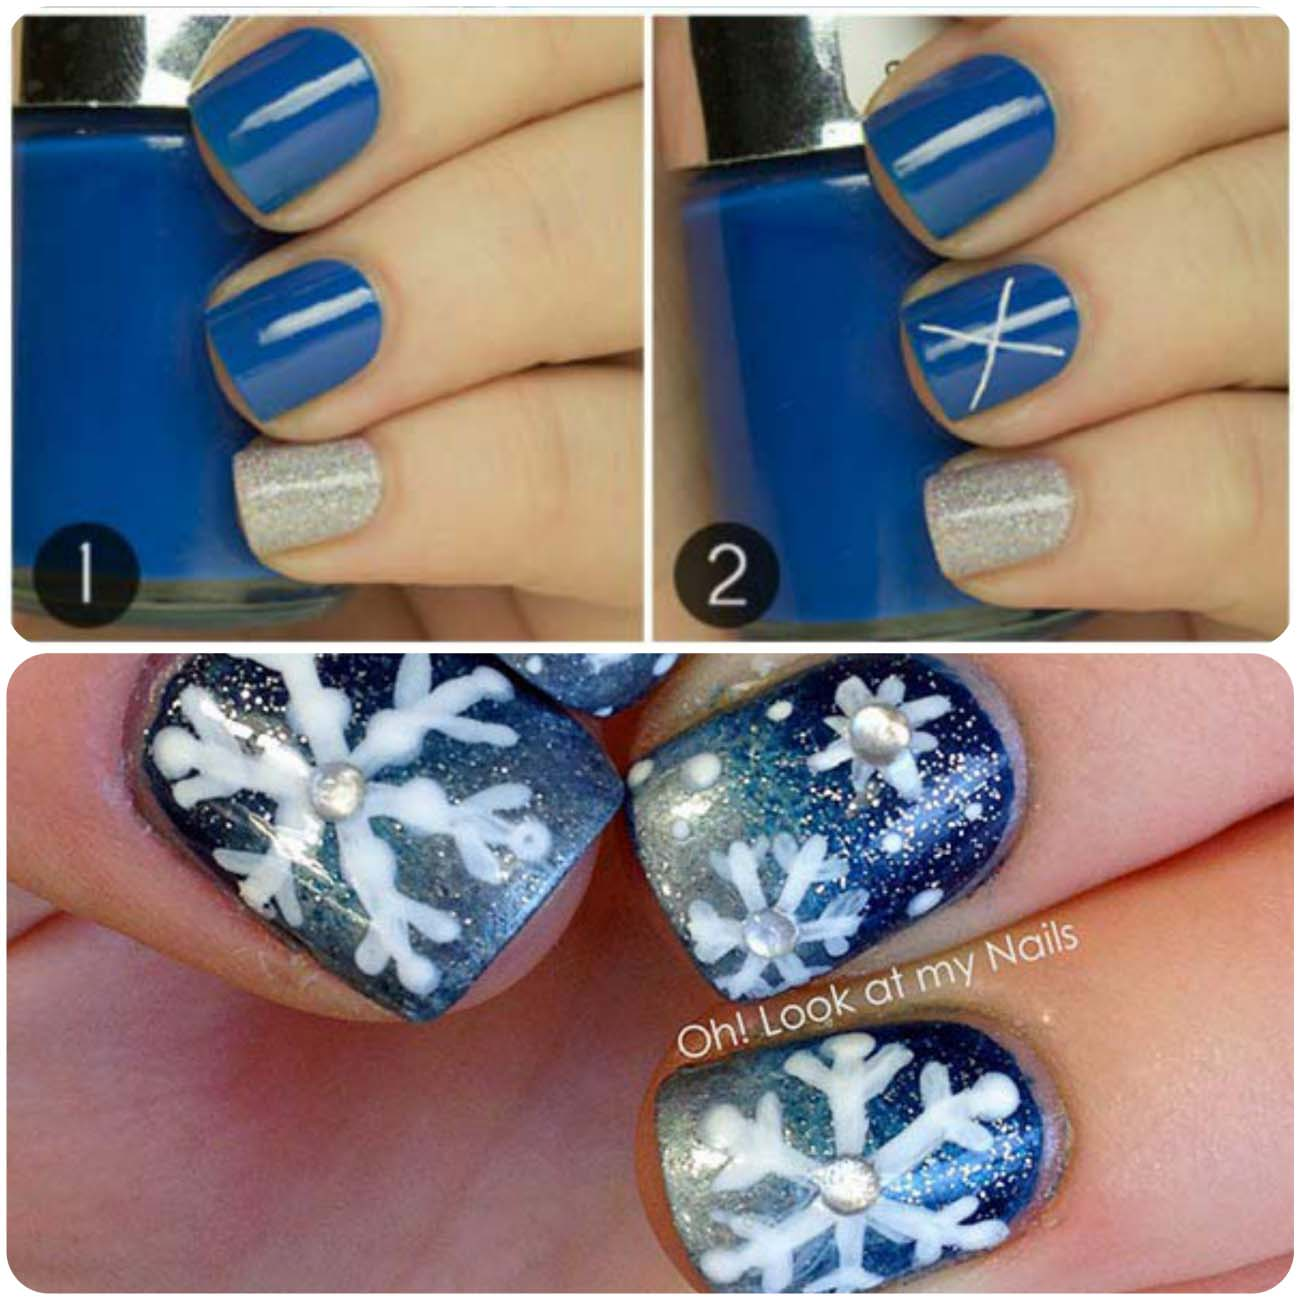 Charistmas Winter Nail art designs (31)_Fotor_Collage